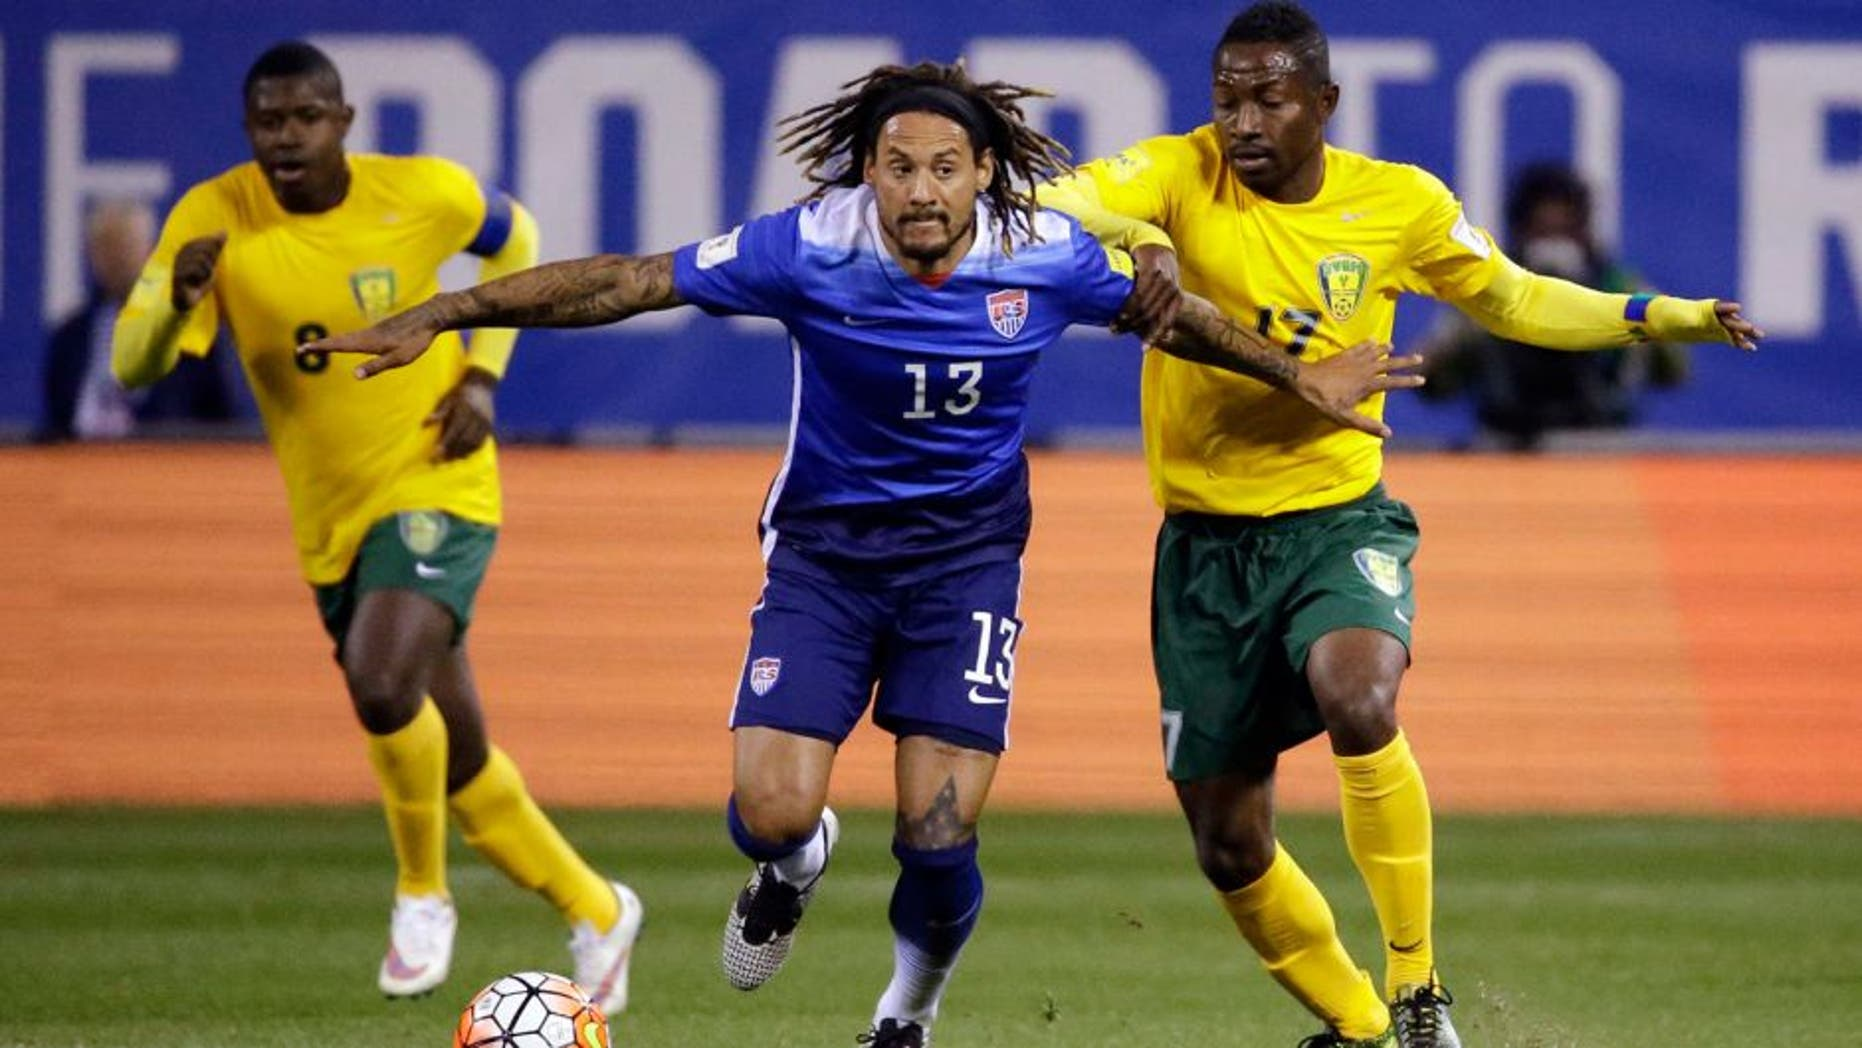 United States' Jermaine Jones (13) controls the ball as St. Vincent and the Grenadines' Dorren Hamlet, left, and Seinard Bowens, right, defend during the first half of a 2018 World Cup qualifying soccer match Friday, Nov. 13, 2015, in St. Louis. (AP Photo/Jeff Roberson)